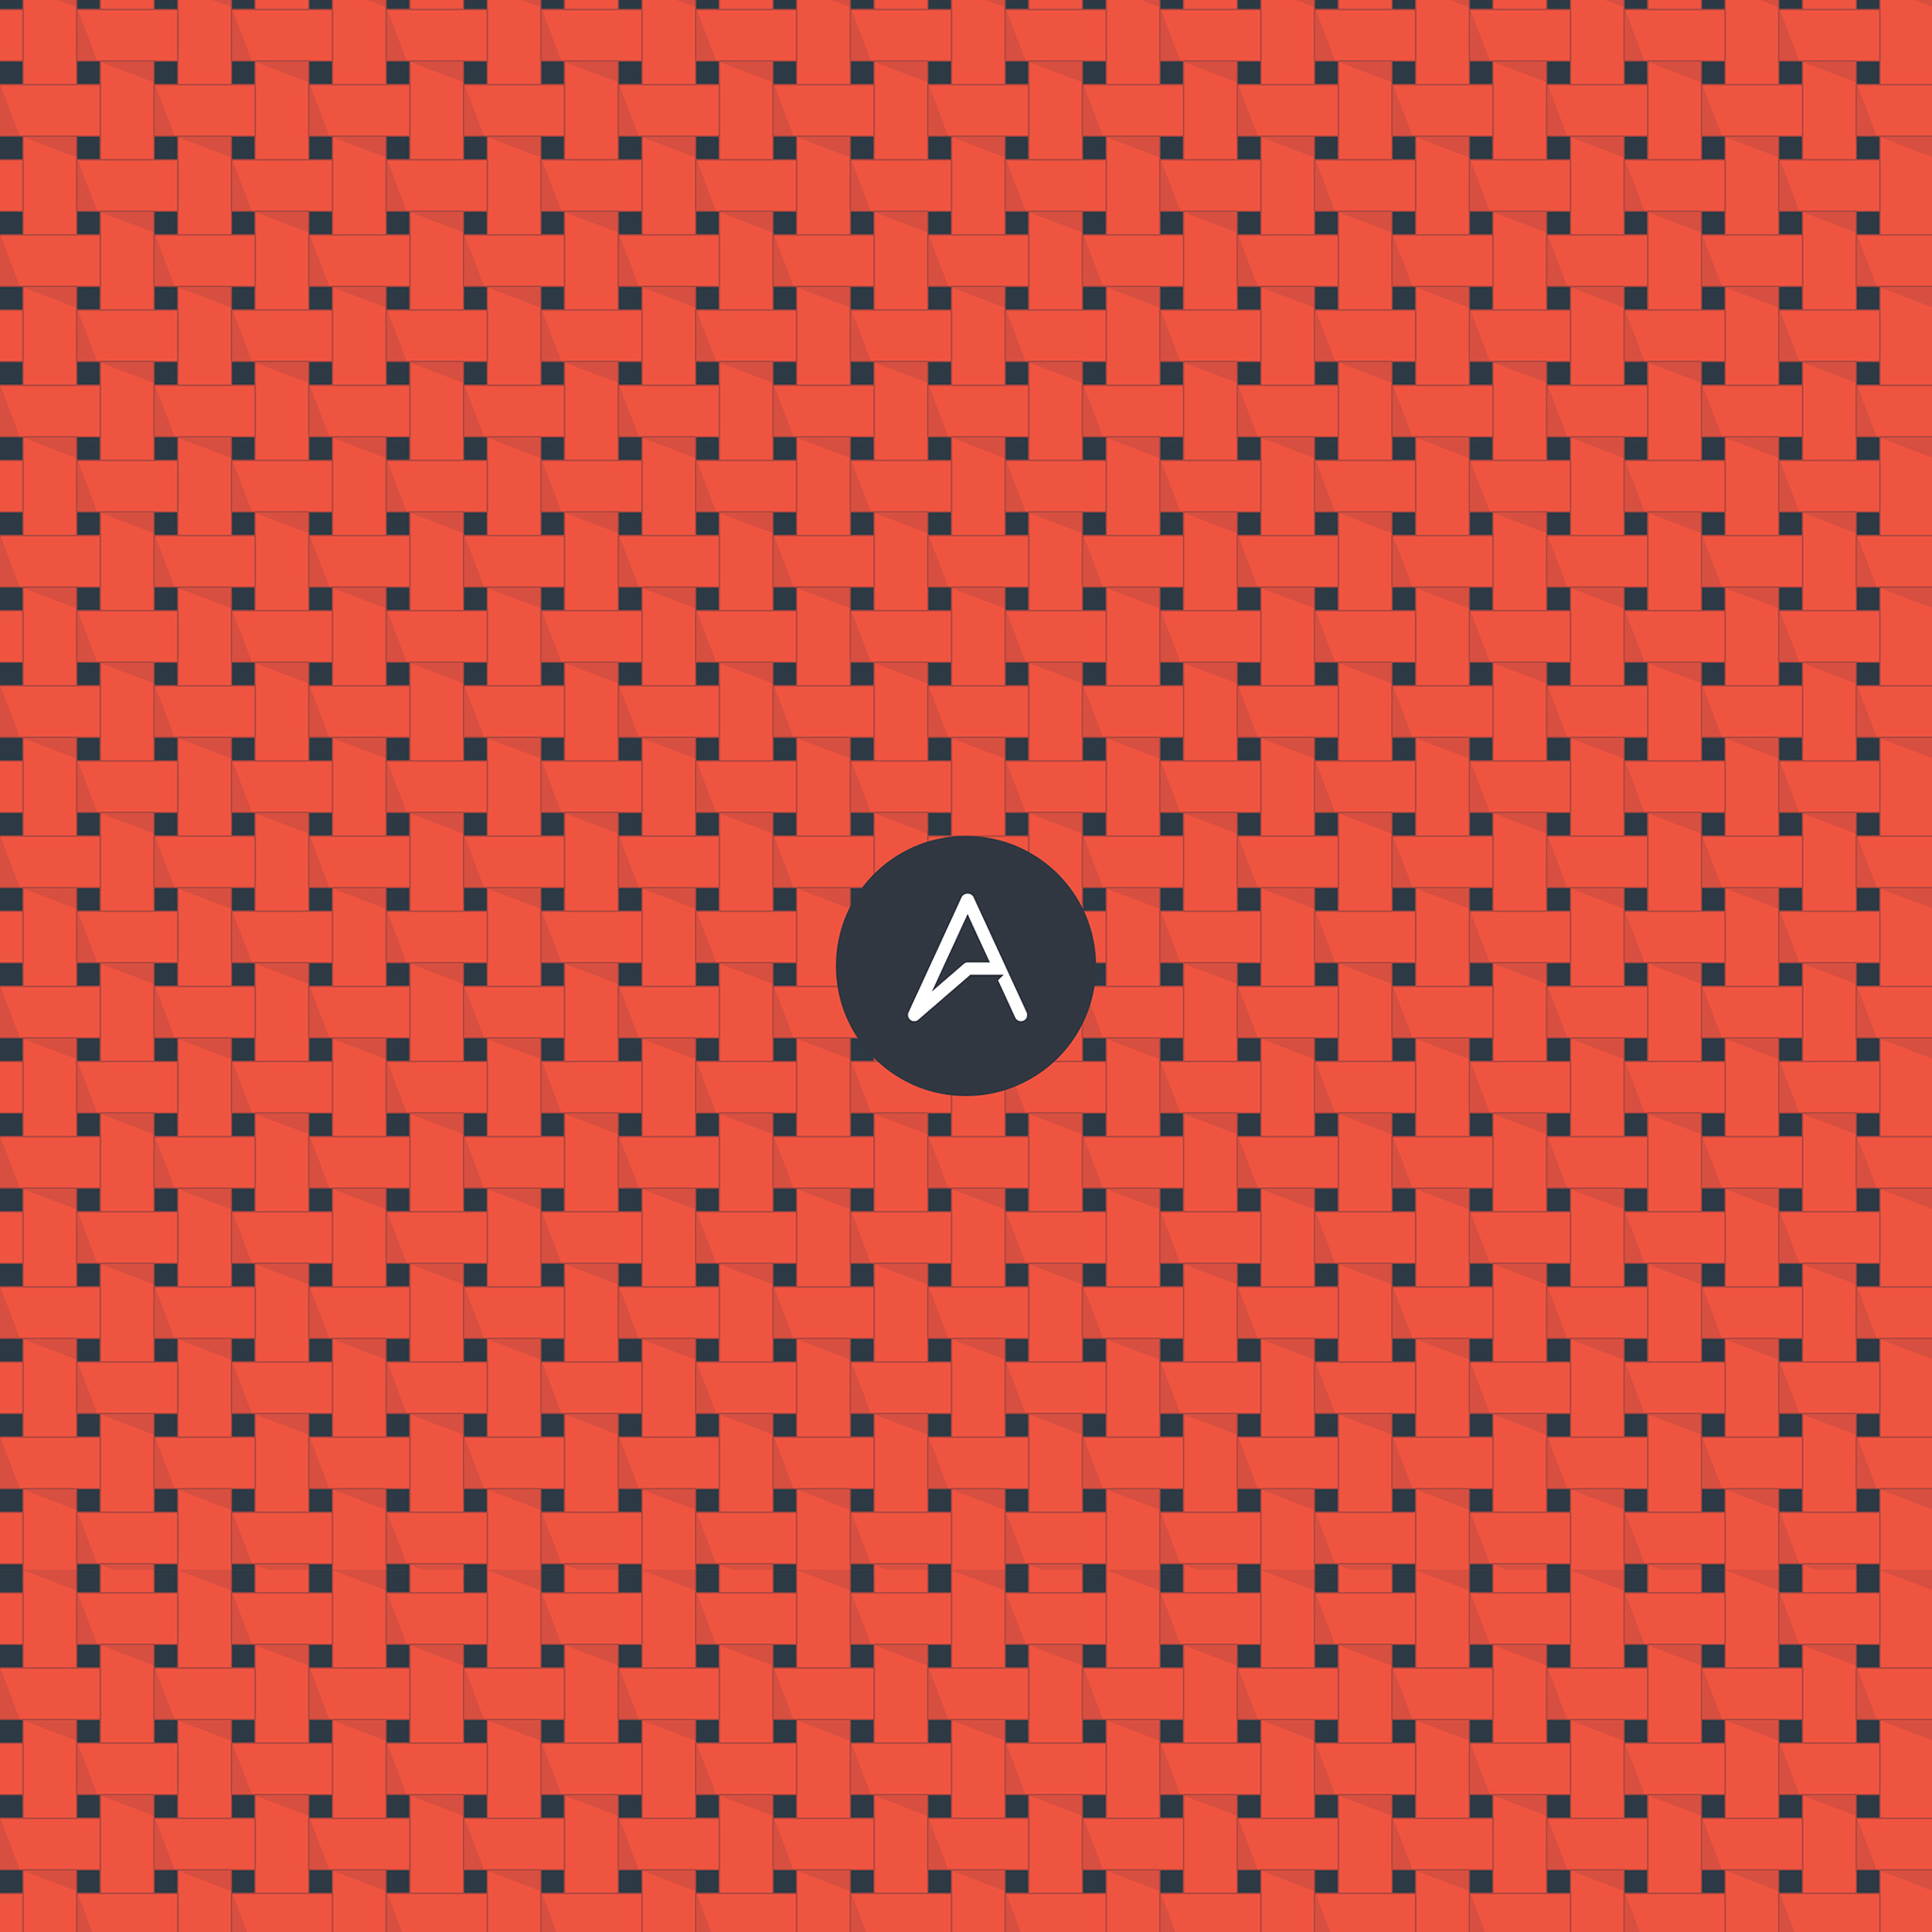 Wallpaper of the Week - ABDZ Patterns